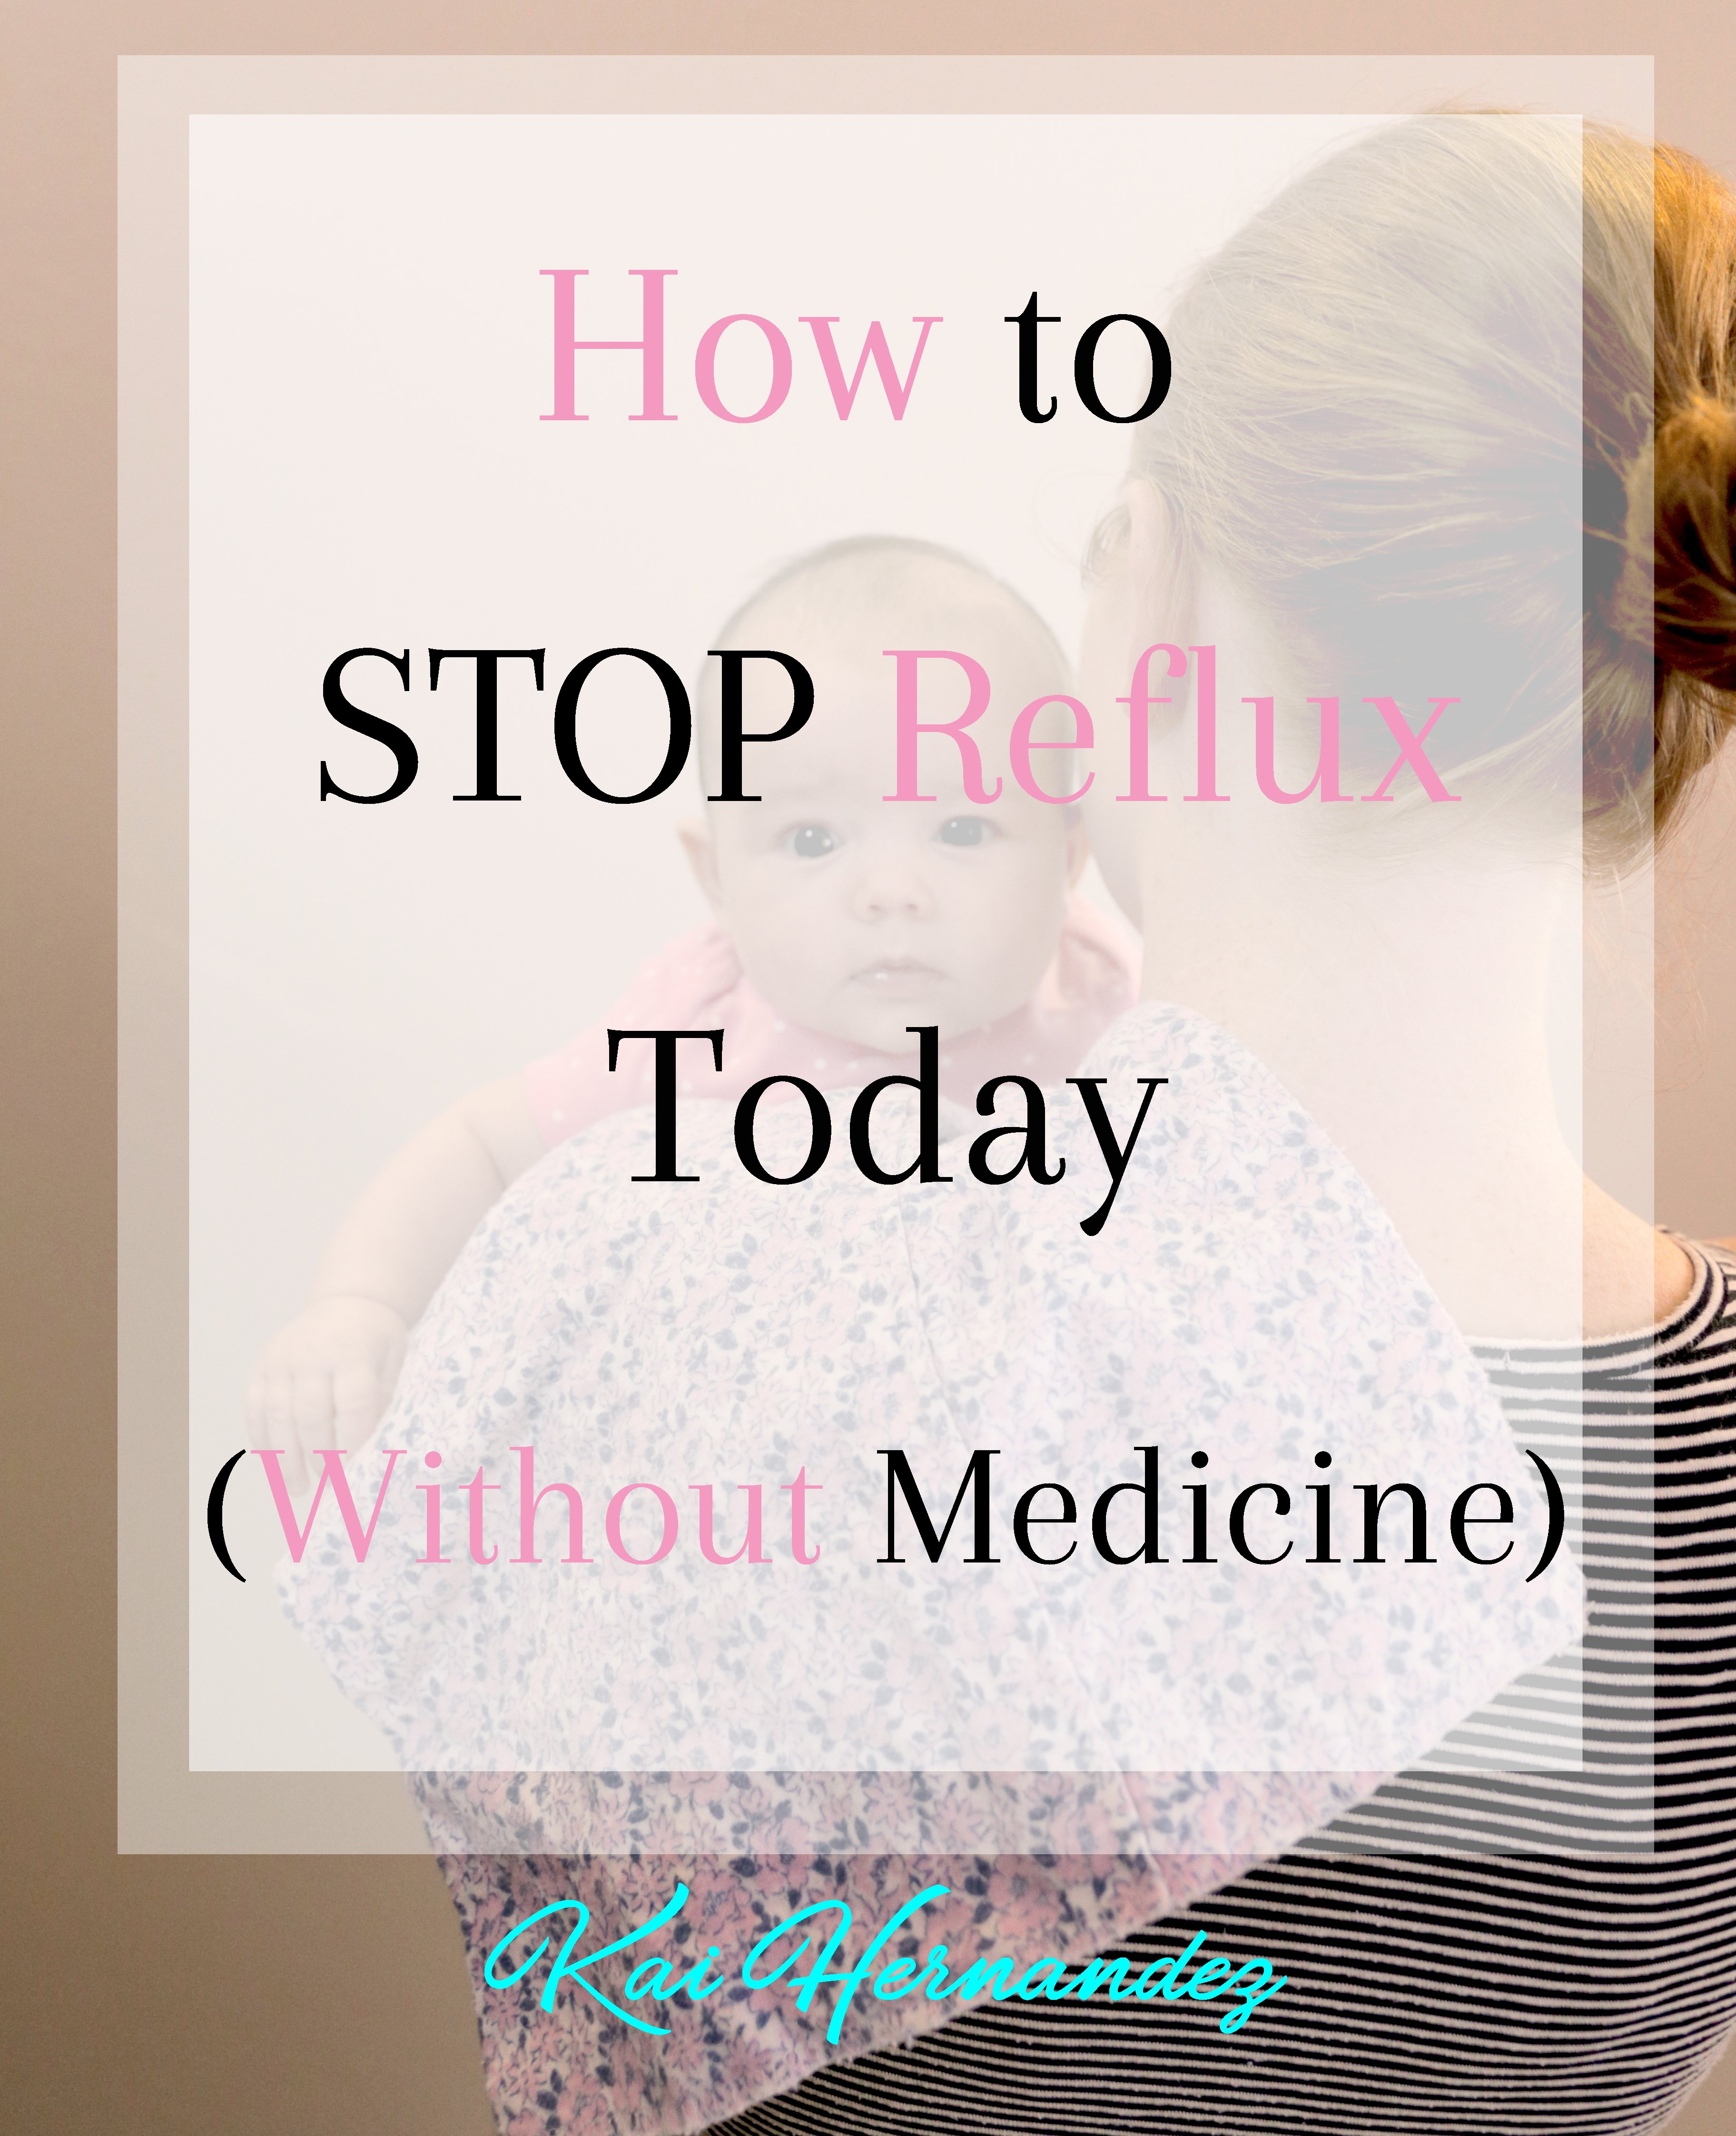 How to Stop Acid Reflux TODAY! #reflux #acidreflux #spitup